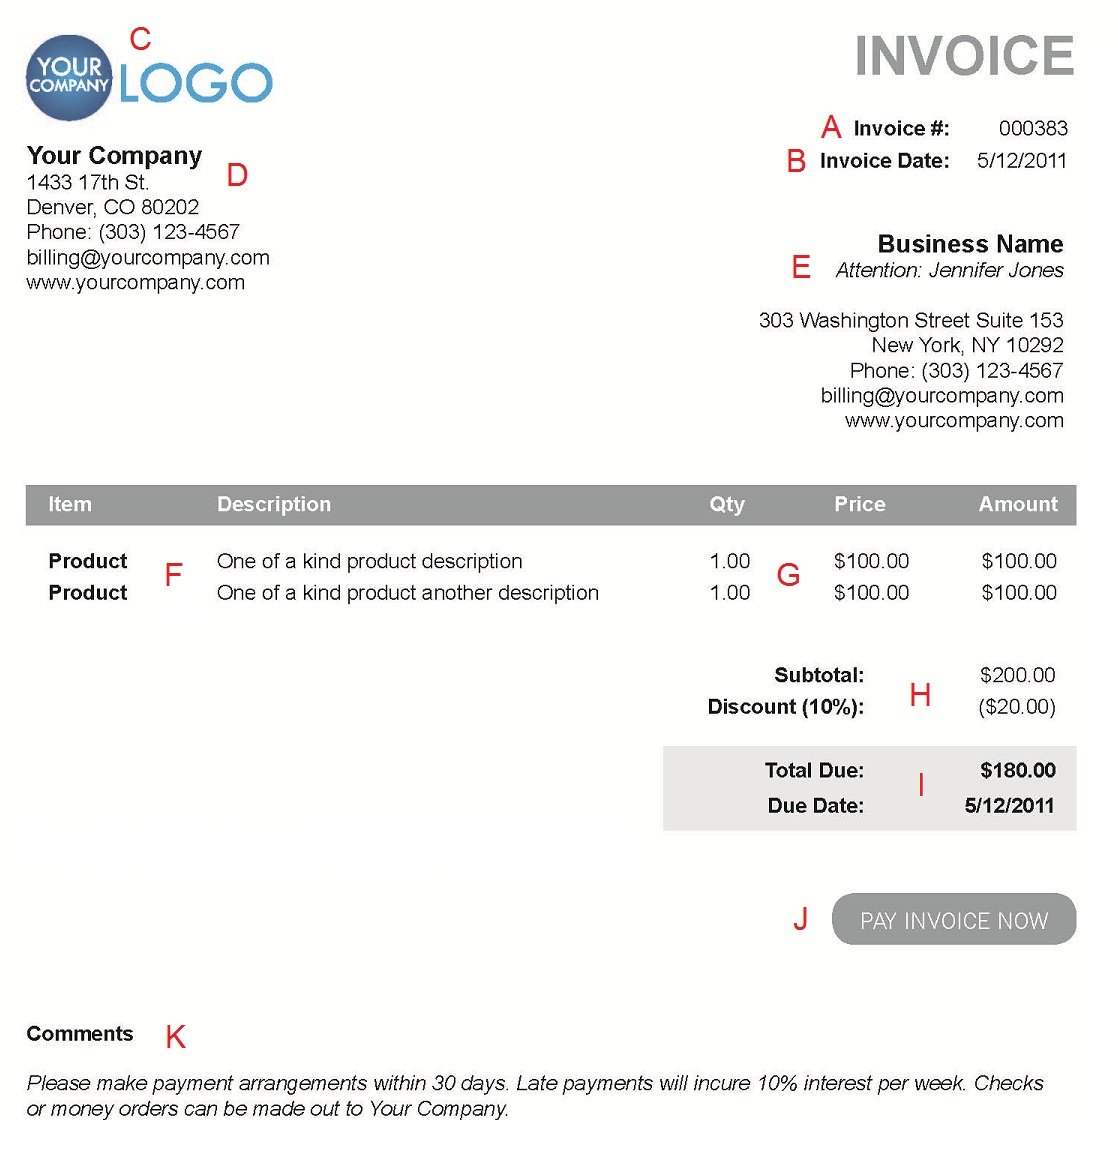 Hucareus  Pretty The  Different Sections Of An Electronic Payment Invoice With Engaging A  With Delectable Cxml Invoice Also What Is Car Invoice Price In Addition Bmw Invoice And Invoice Template Printable As Well As Invoice Types Additionally Fill In Invoice From Paysimplecom With Hucareus  Engaging The  Different Sections Of An Electronic Payment Invoice With Delectable A  And Pretty Cxml Invoice Also What Is Car Invoice Price In Addition Bmw Invoice From Paysimplecom